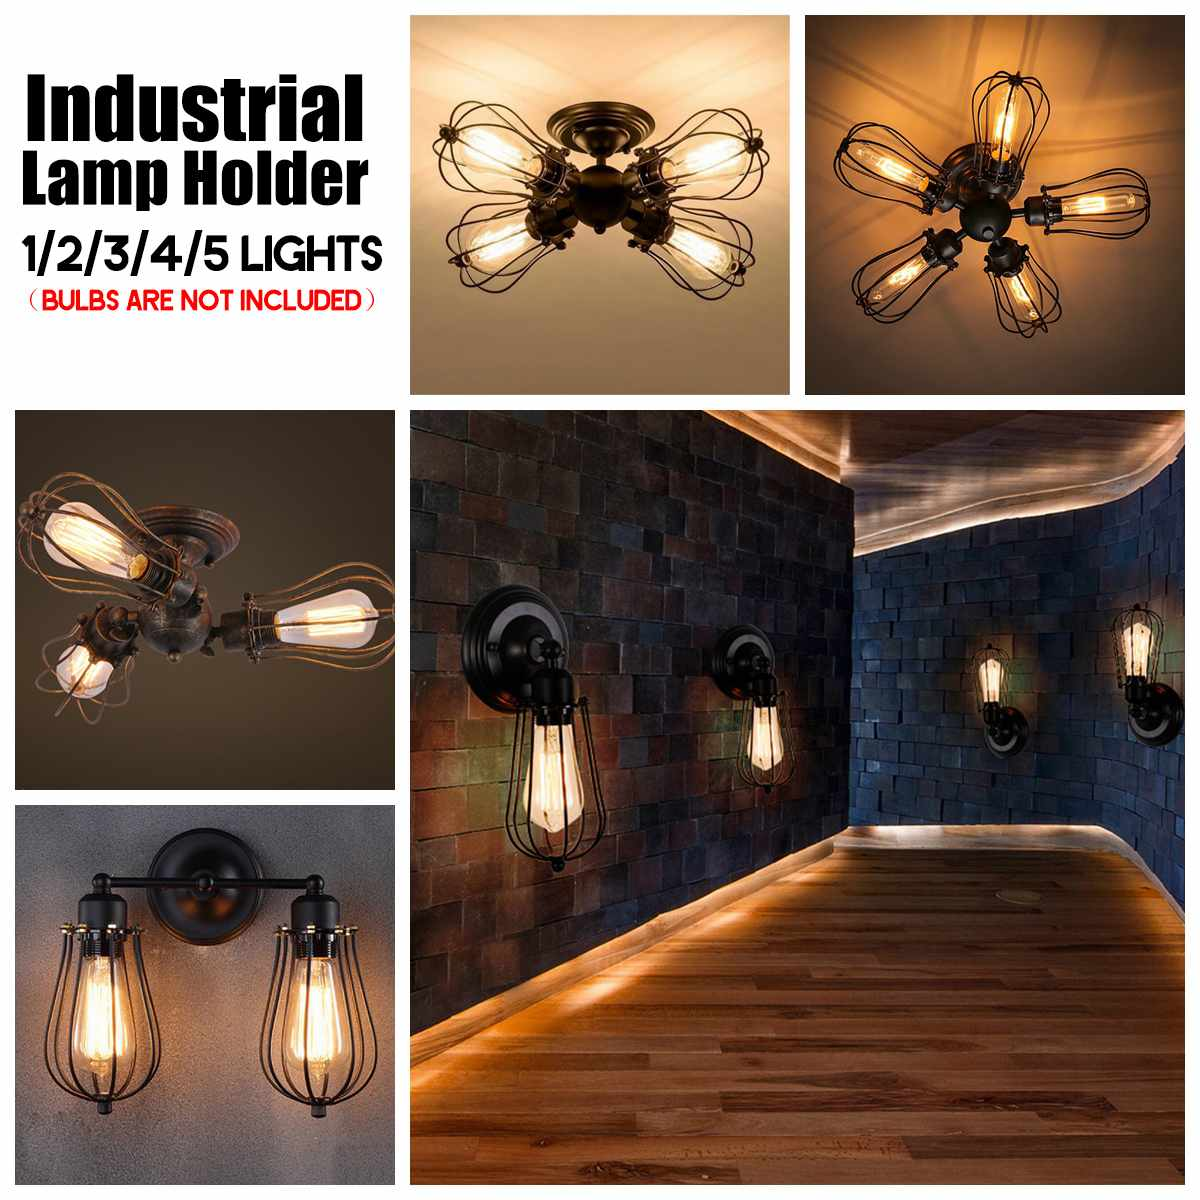 Industrial Pendant Light Industrial Edison 1/3 Head Lights Retro Barn Metal Flush Mount Ceiling Art Spide|Pendant Lights| |  - title=